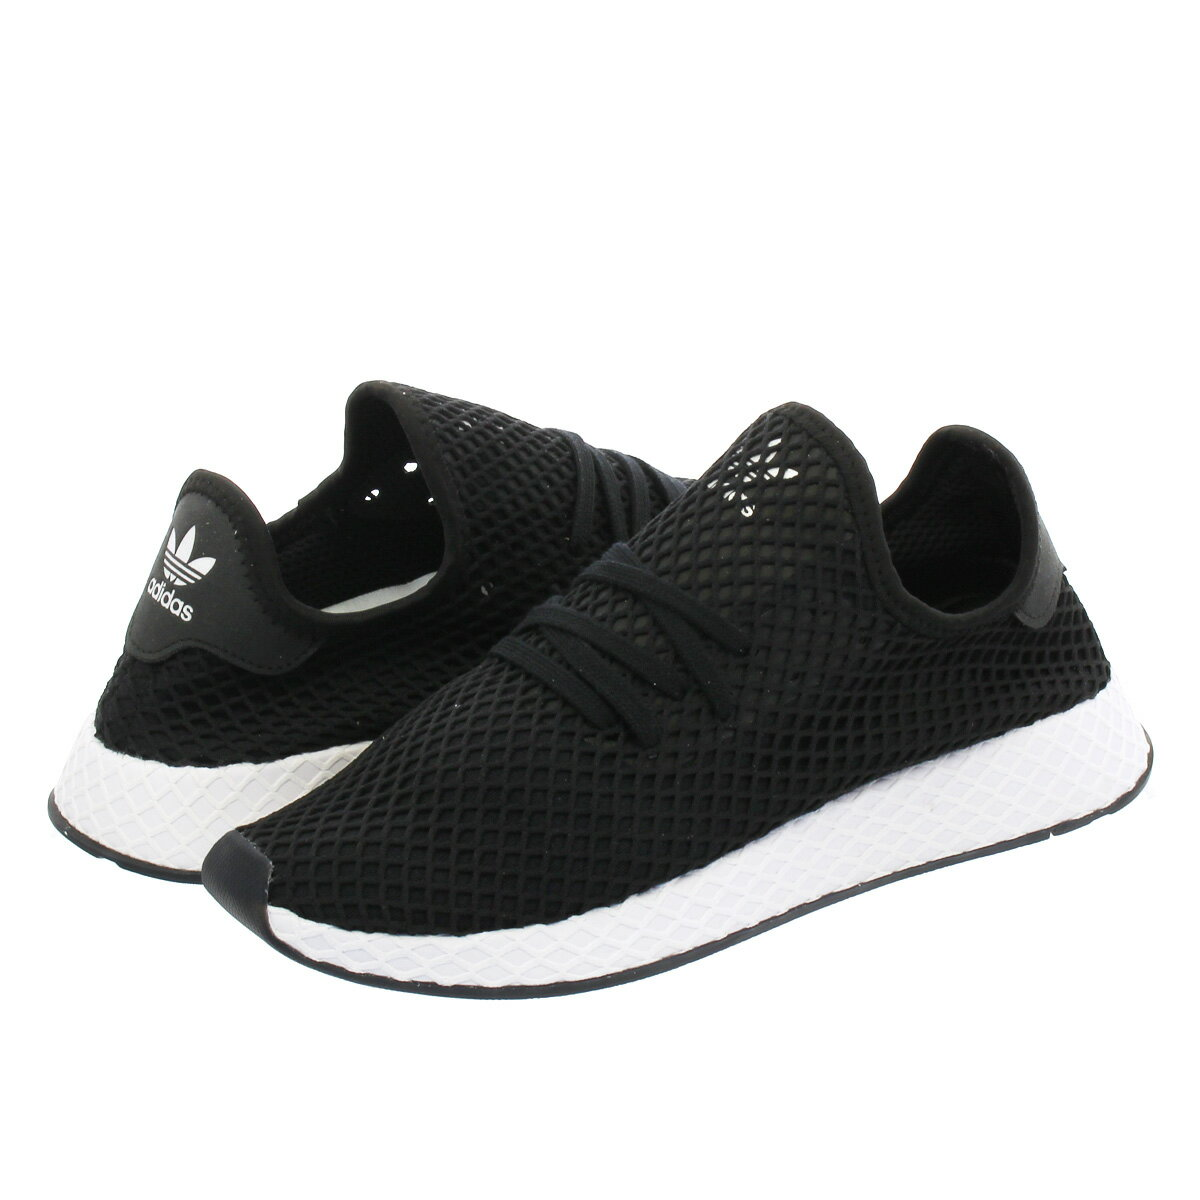 メンズ靴, スニーカー adidas DEERUPT RUNNER KICKS LAB. KICKS LAB. EXCLUSIVE CORE BLACKCORE BLACKRUNNING WHITE